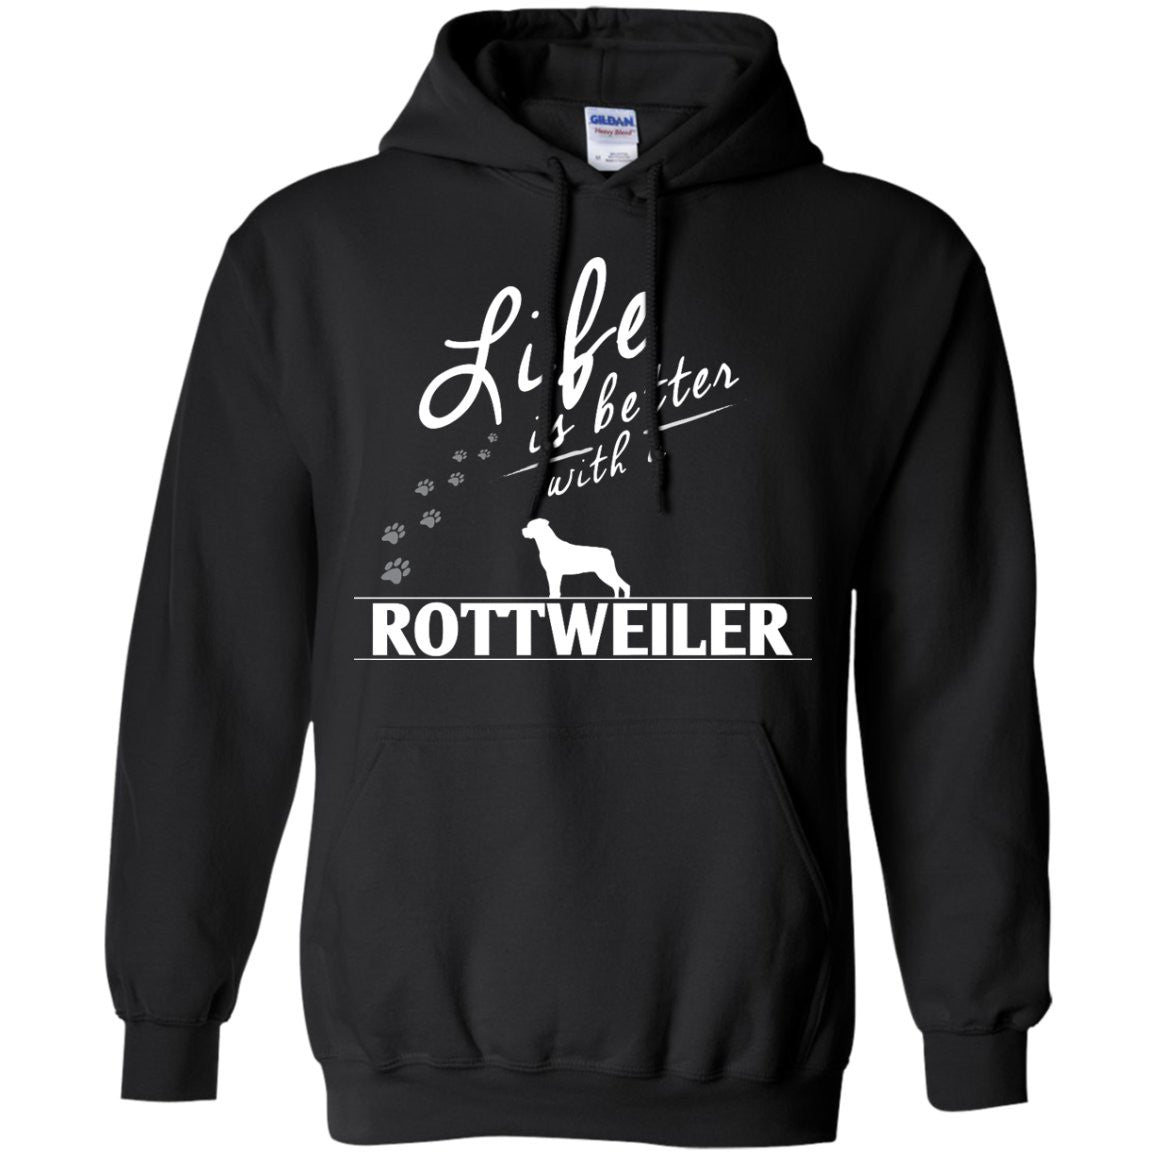 Rottweiler - Life Is Better With A Rottweiler Paws - Pullover Hoodie 8 oz